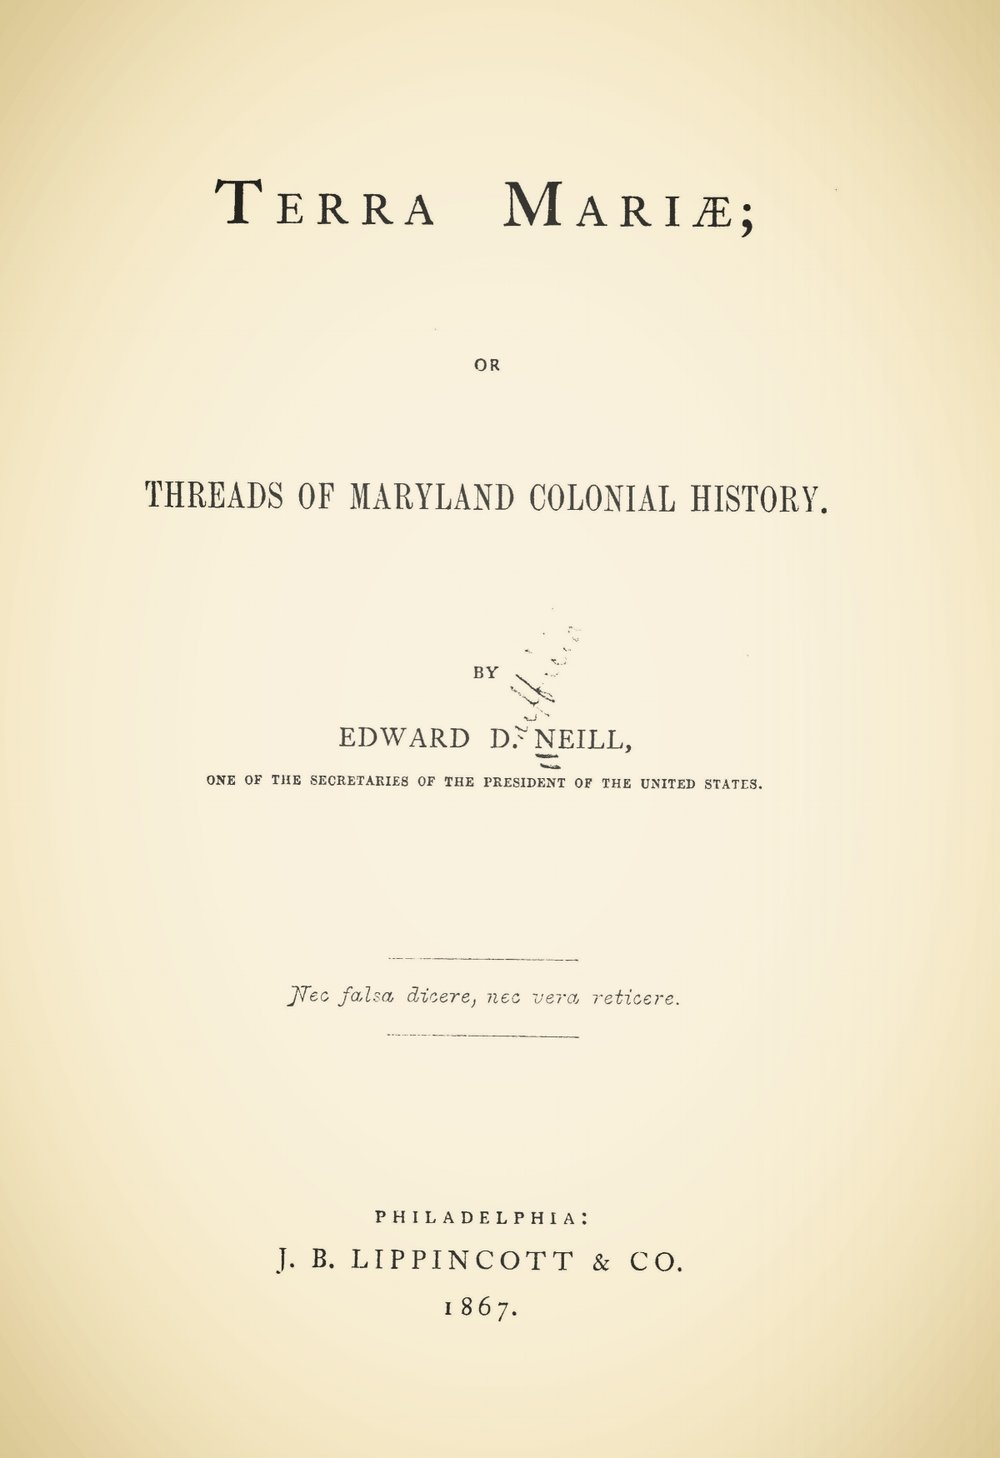 Neill, Edward Duffield, Terra Mariæ; or, Threads of Maryland Colonial History Title Page.jpg